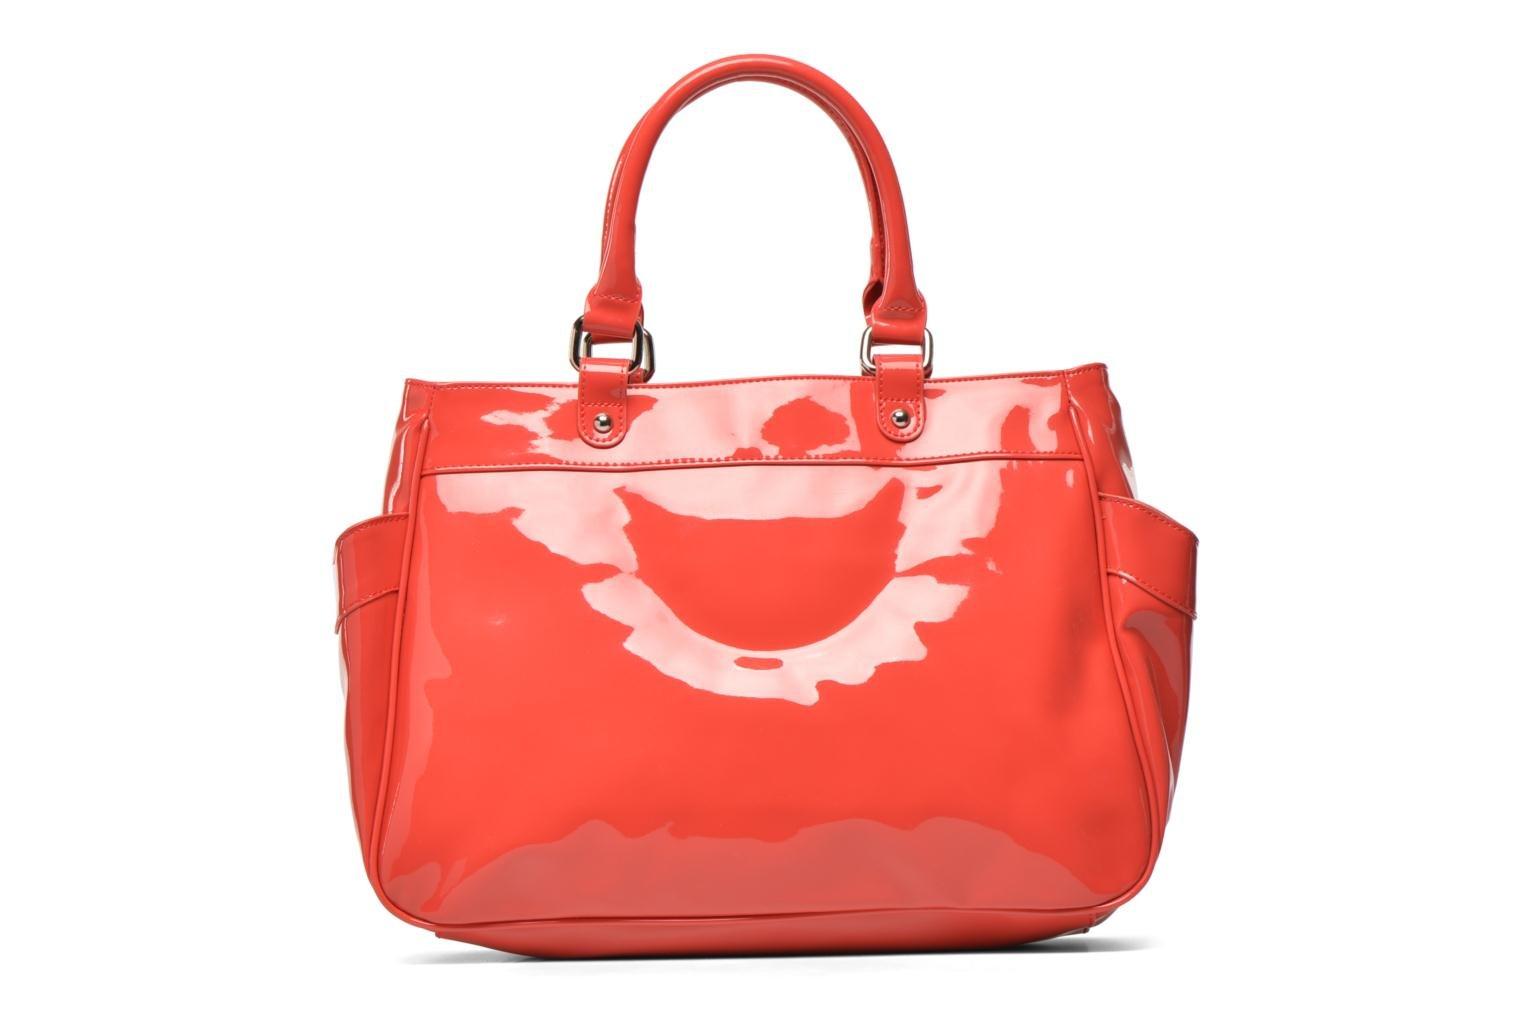 Handbags Les P'tites Bombes Sac Vernis Red front view